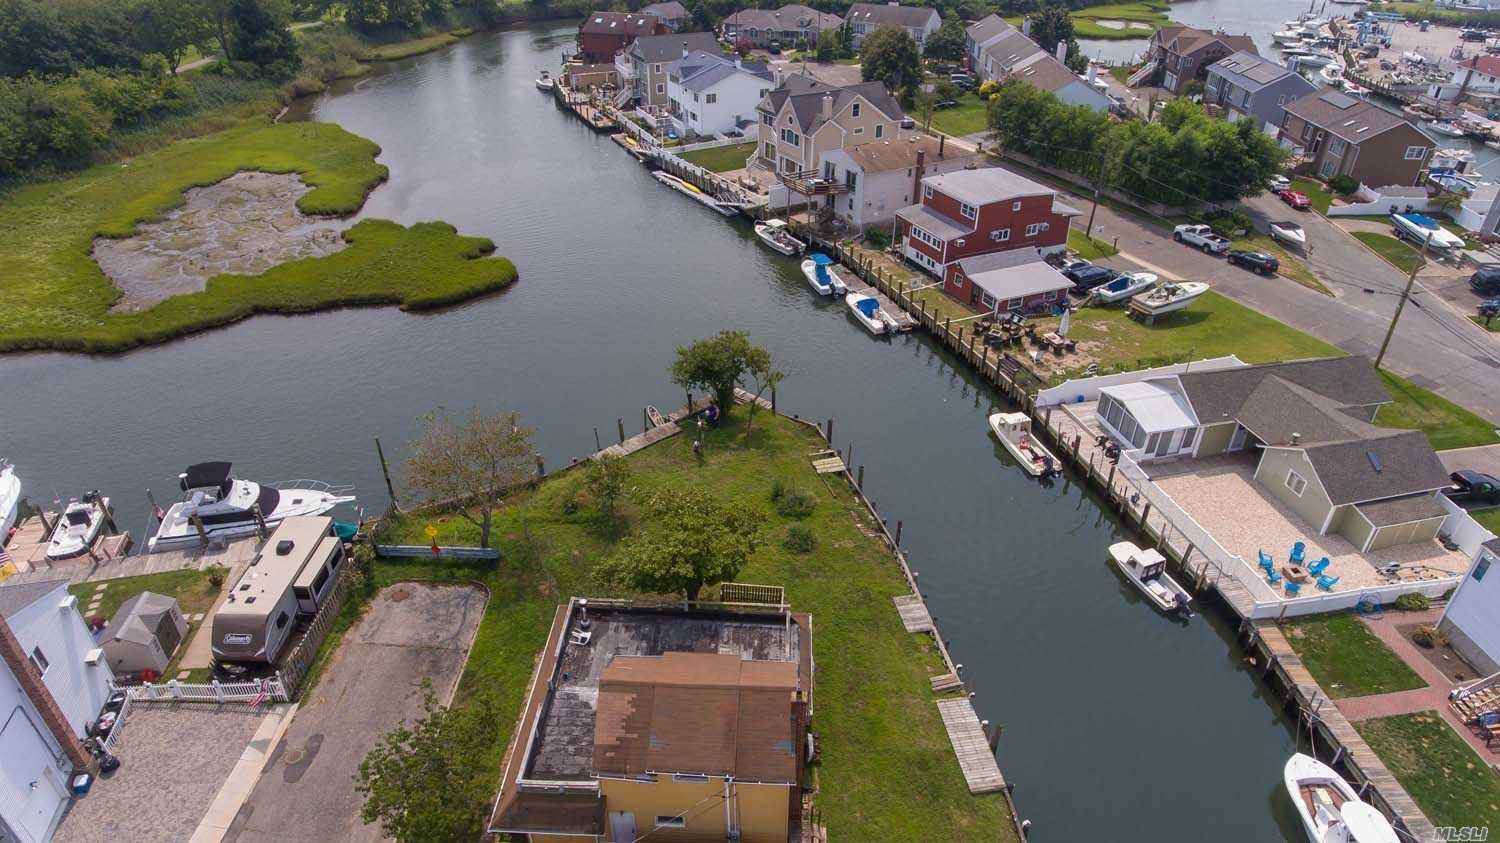 Boat*Fish*Swim*All From Your Own Backyard With This Waterfront Gem*Amazing Chance To Live On The Water And Customize Your Finishing Touches*Great Corner Property With Quick Water Access*This Is A Must See!